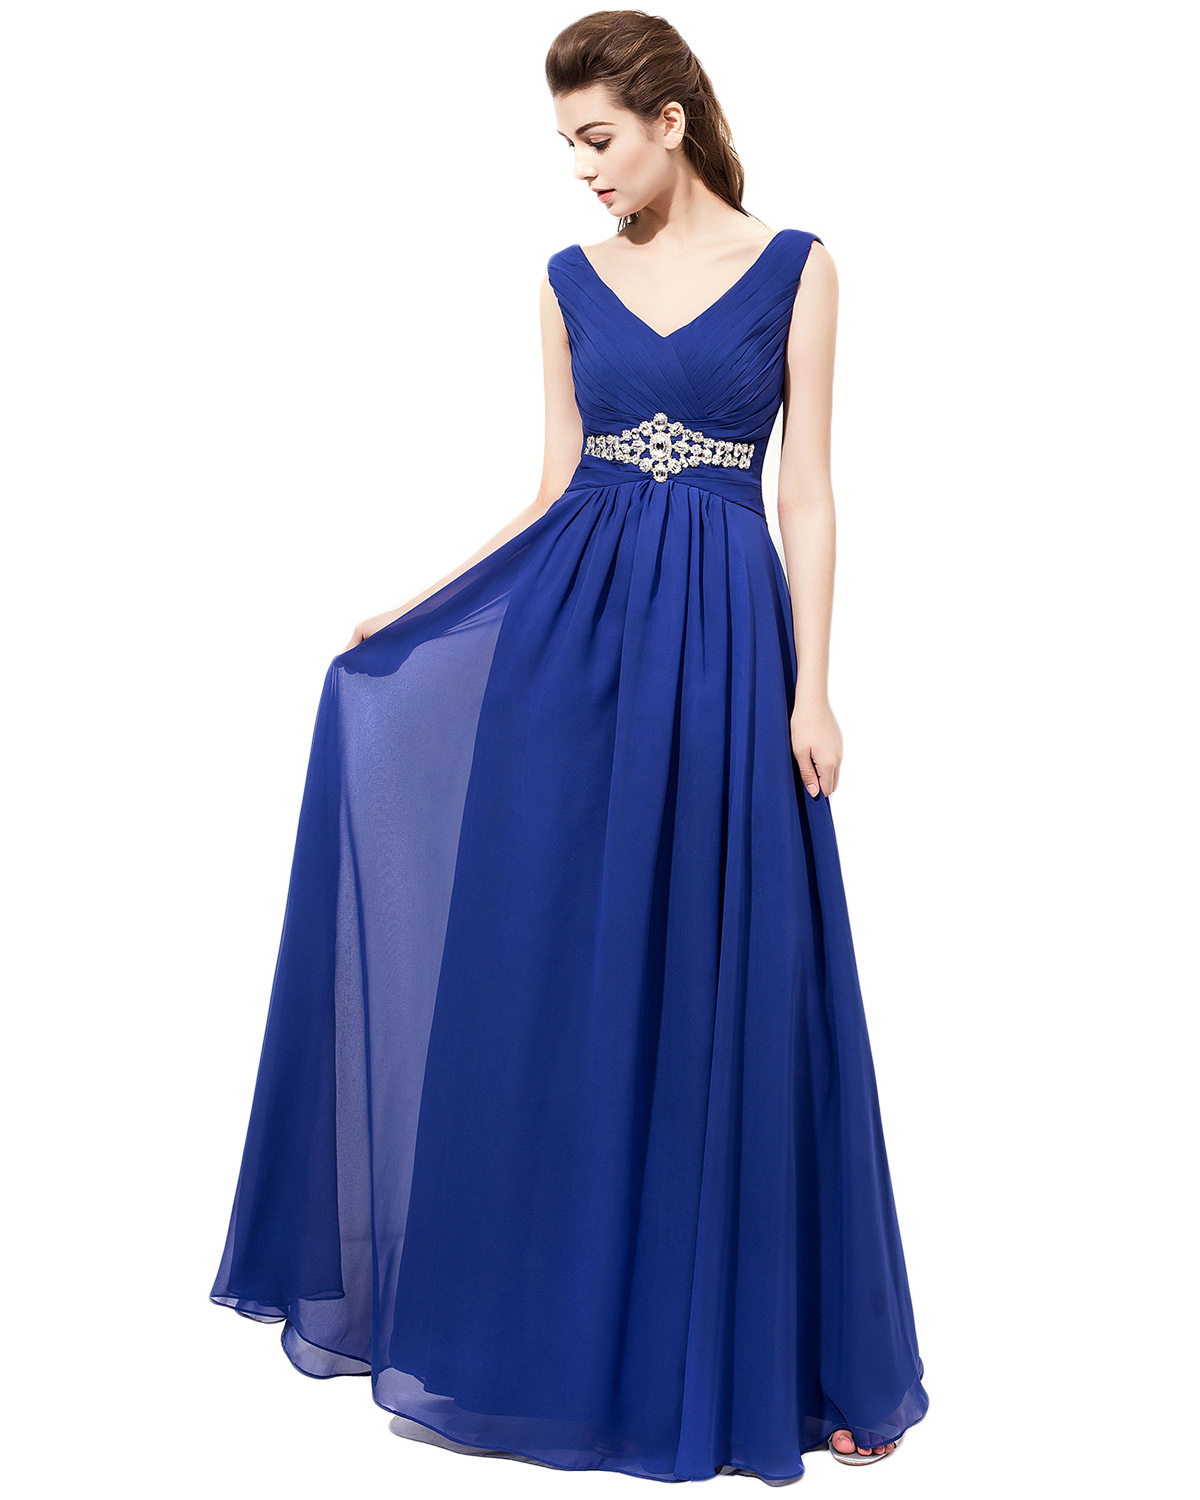 9c40886a78 Brilliant Plunge V Royal Blue Chiffon Bridesmaid Dresses